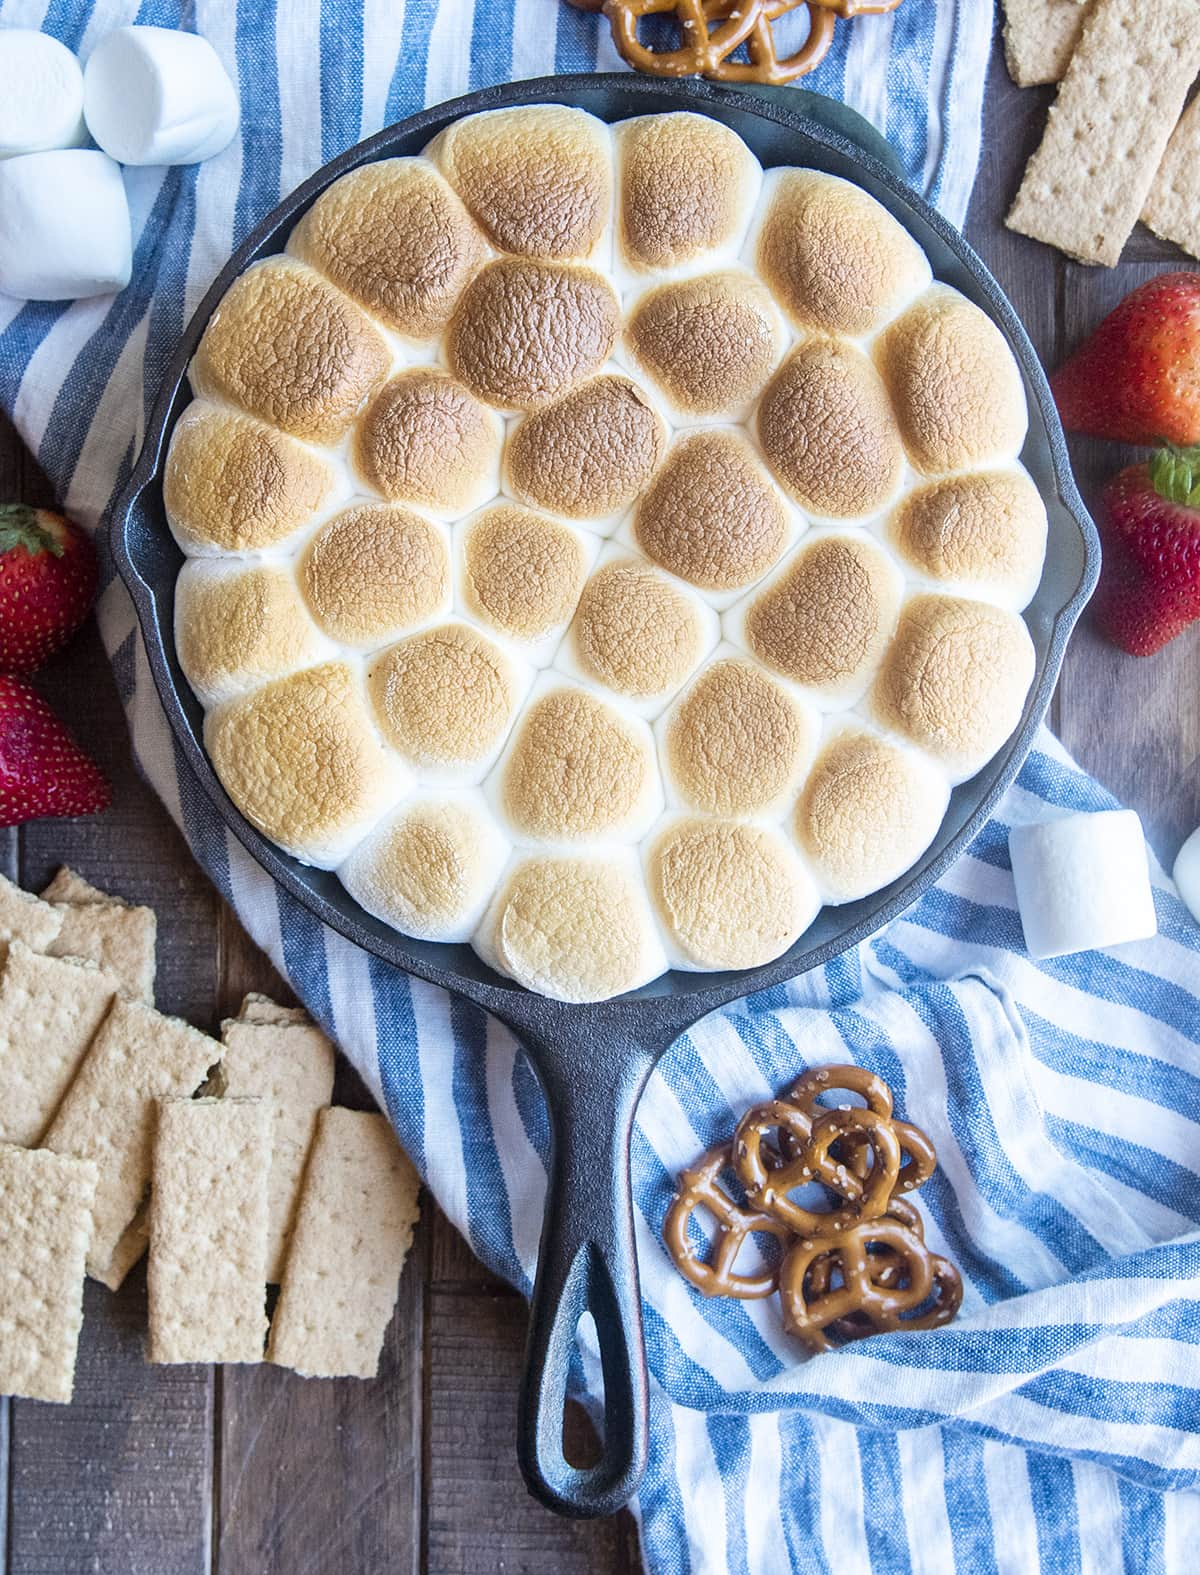 A cast iron pan full of toasted marshmallows.